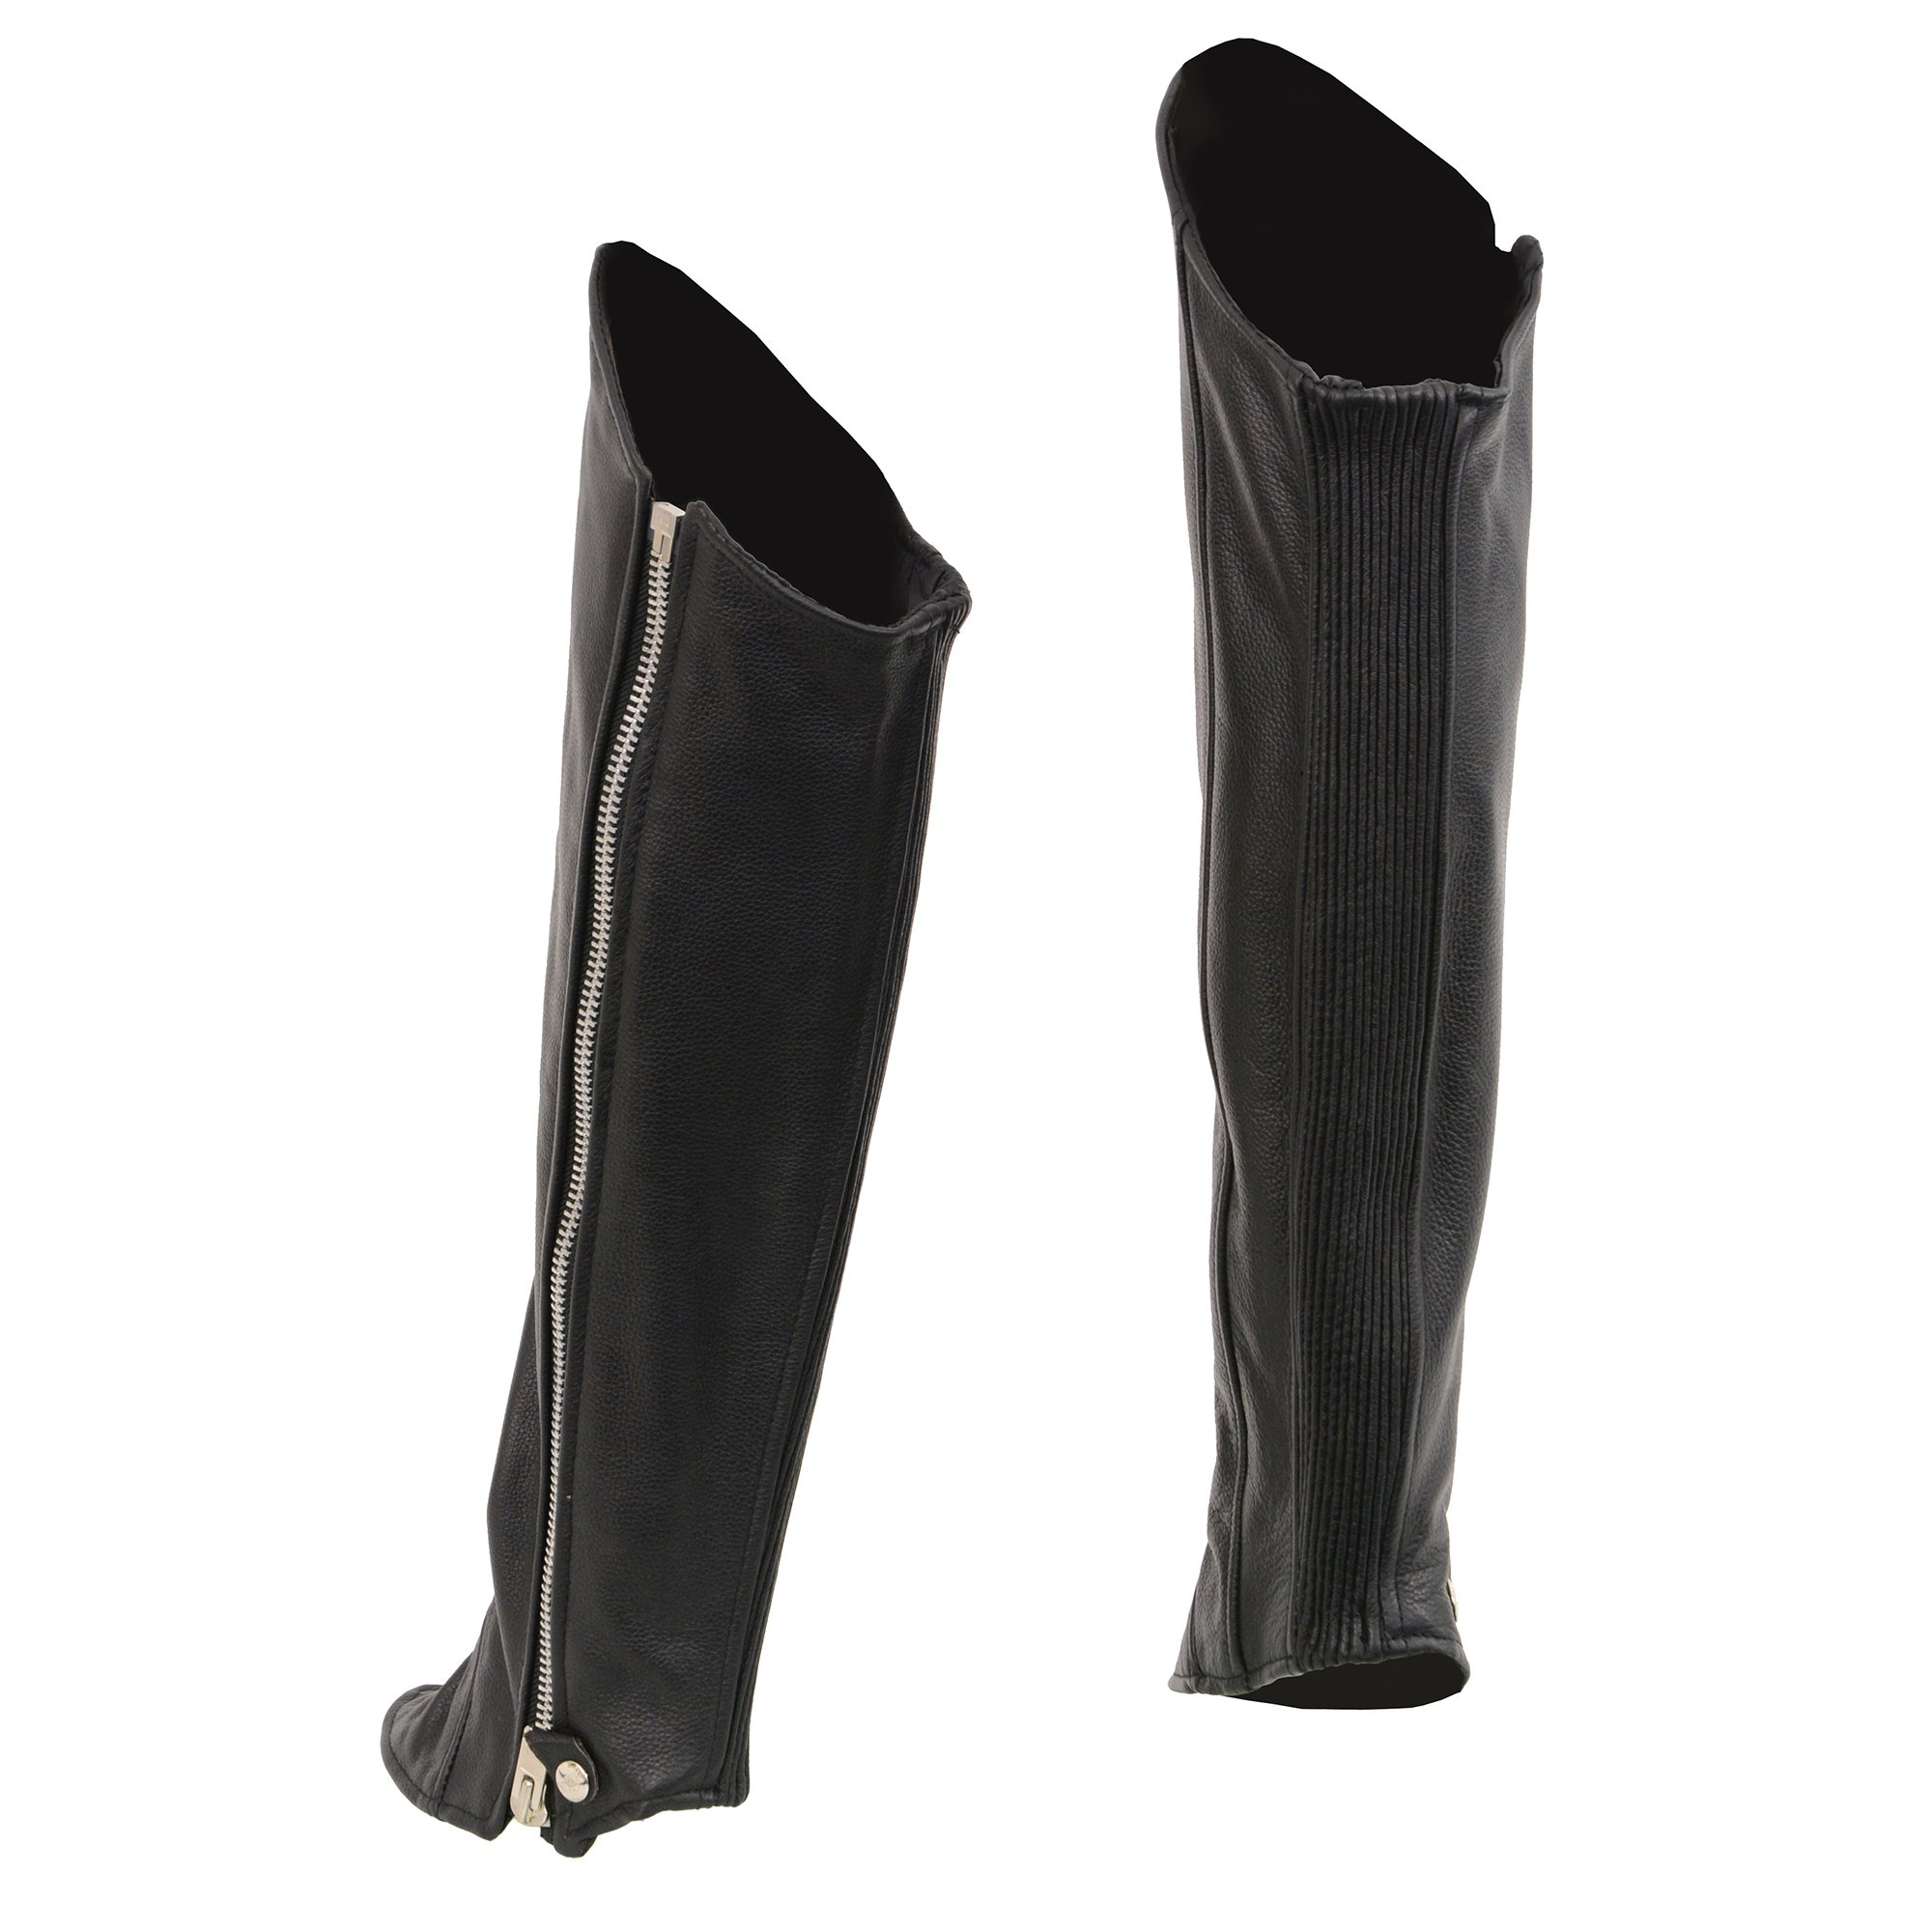 Milwaukee Leather Women's Knee High Half Chaps with Zipper Entry (Black, XX-Large/XXX-Large) by Milwaukee Leather (Image #2)